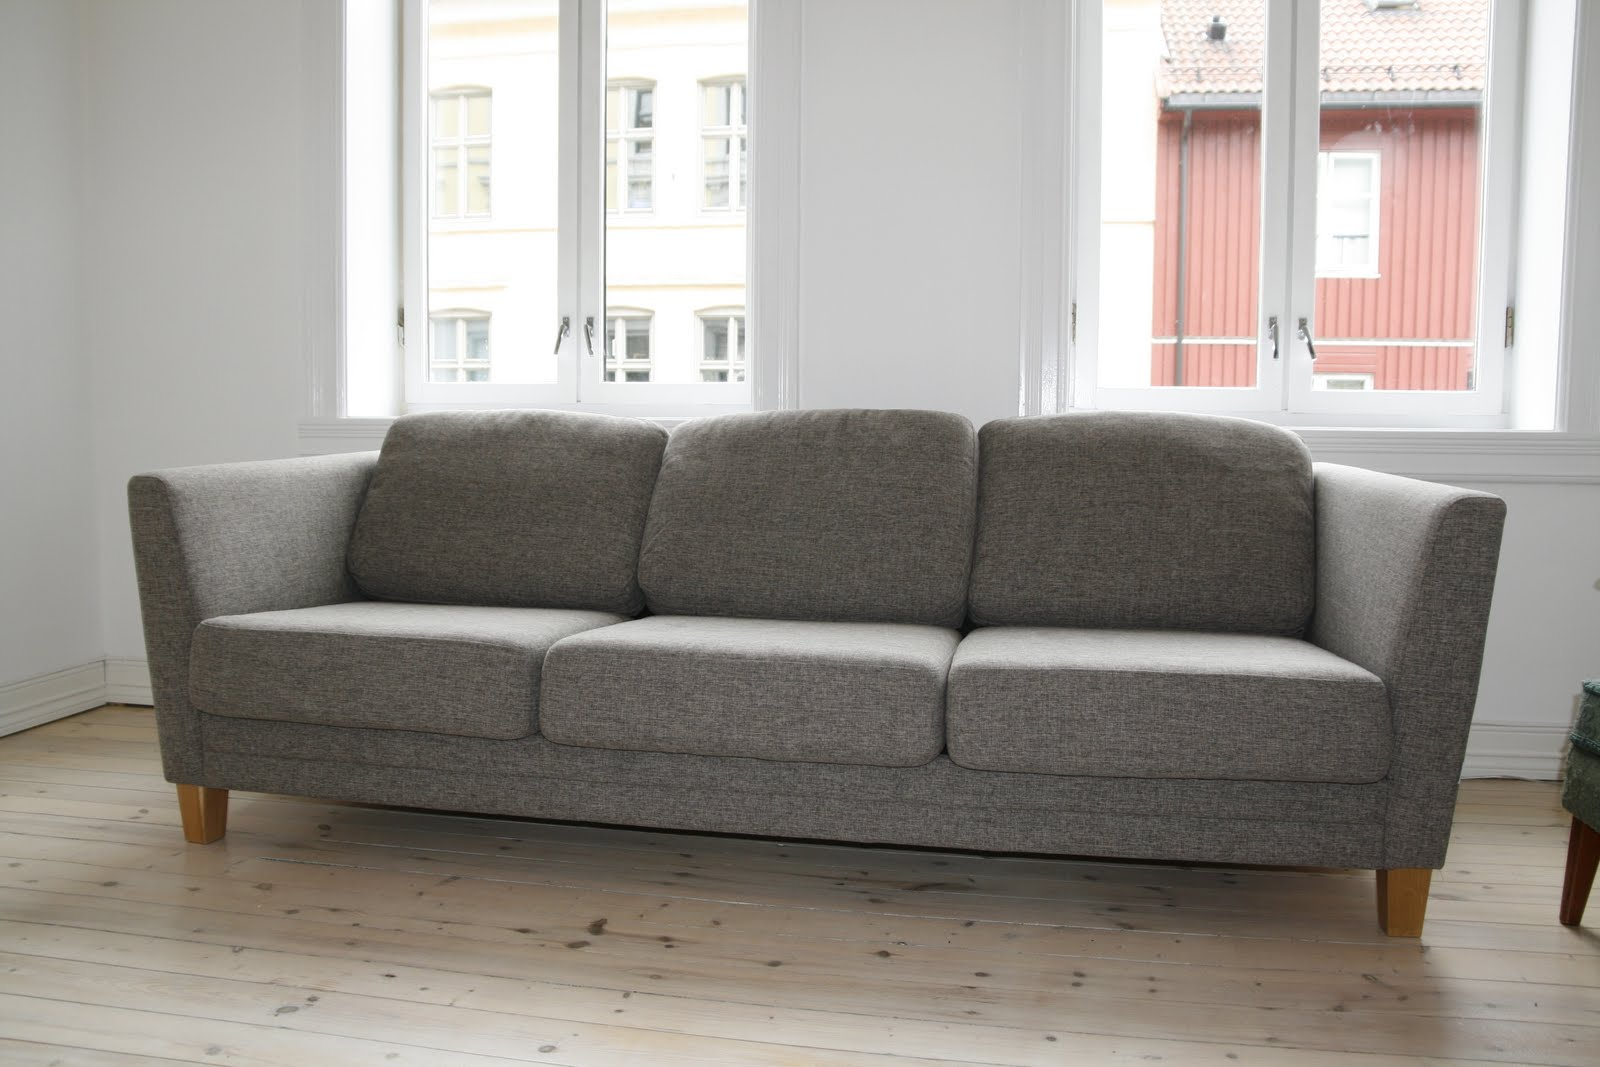 Bolia Sofa Review Refil Sofa